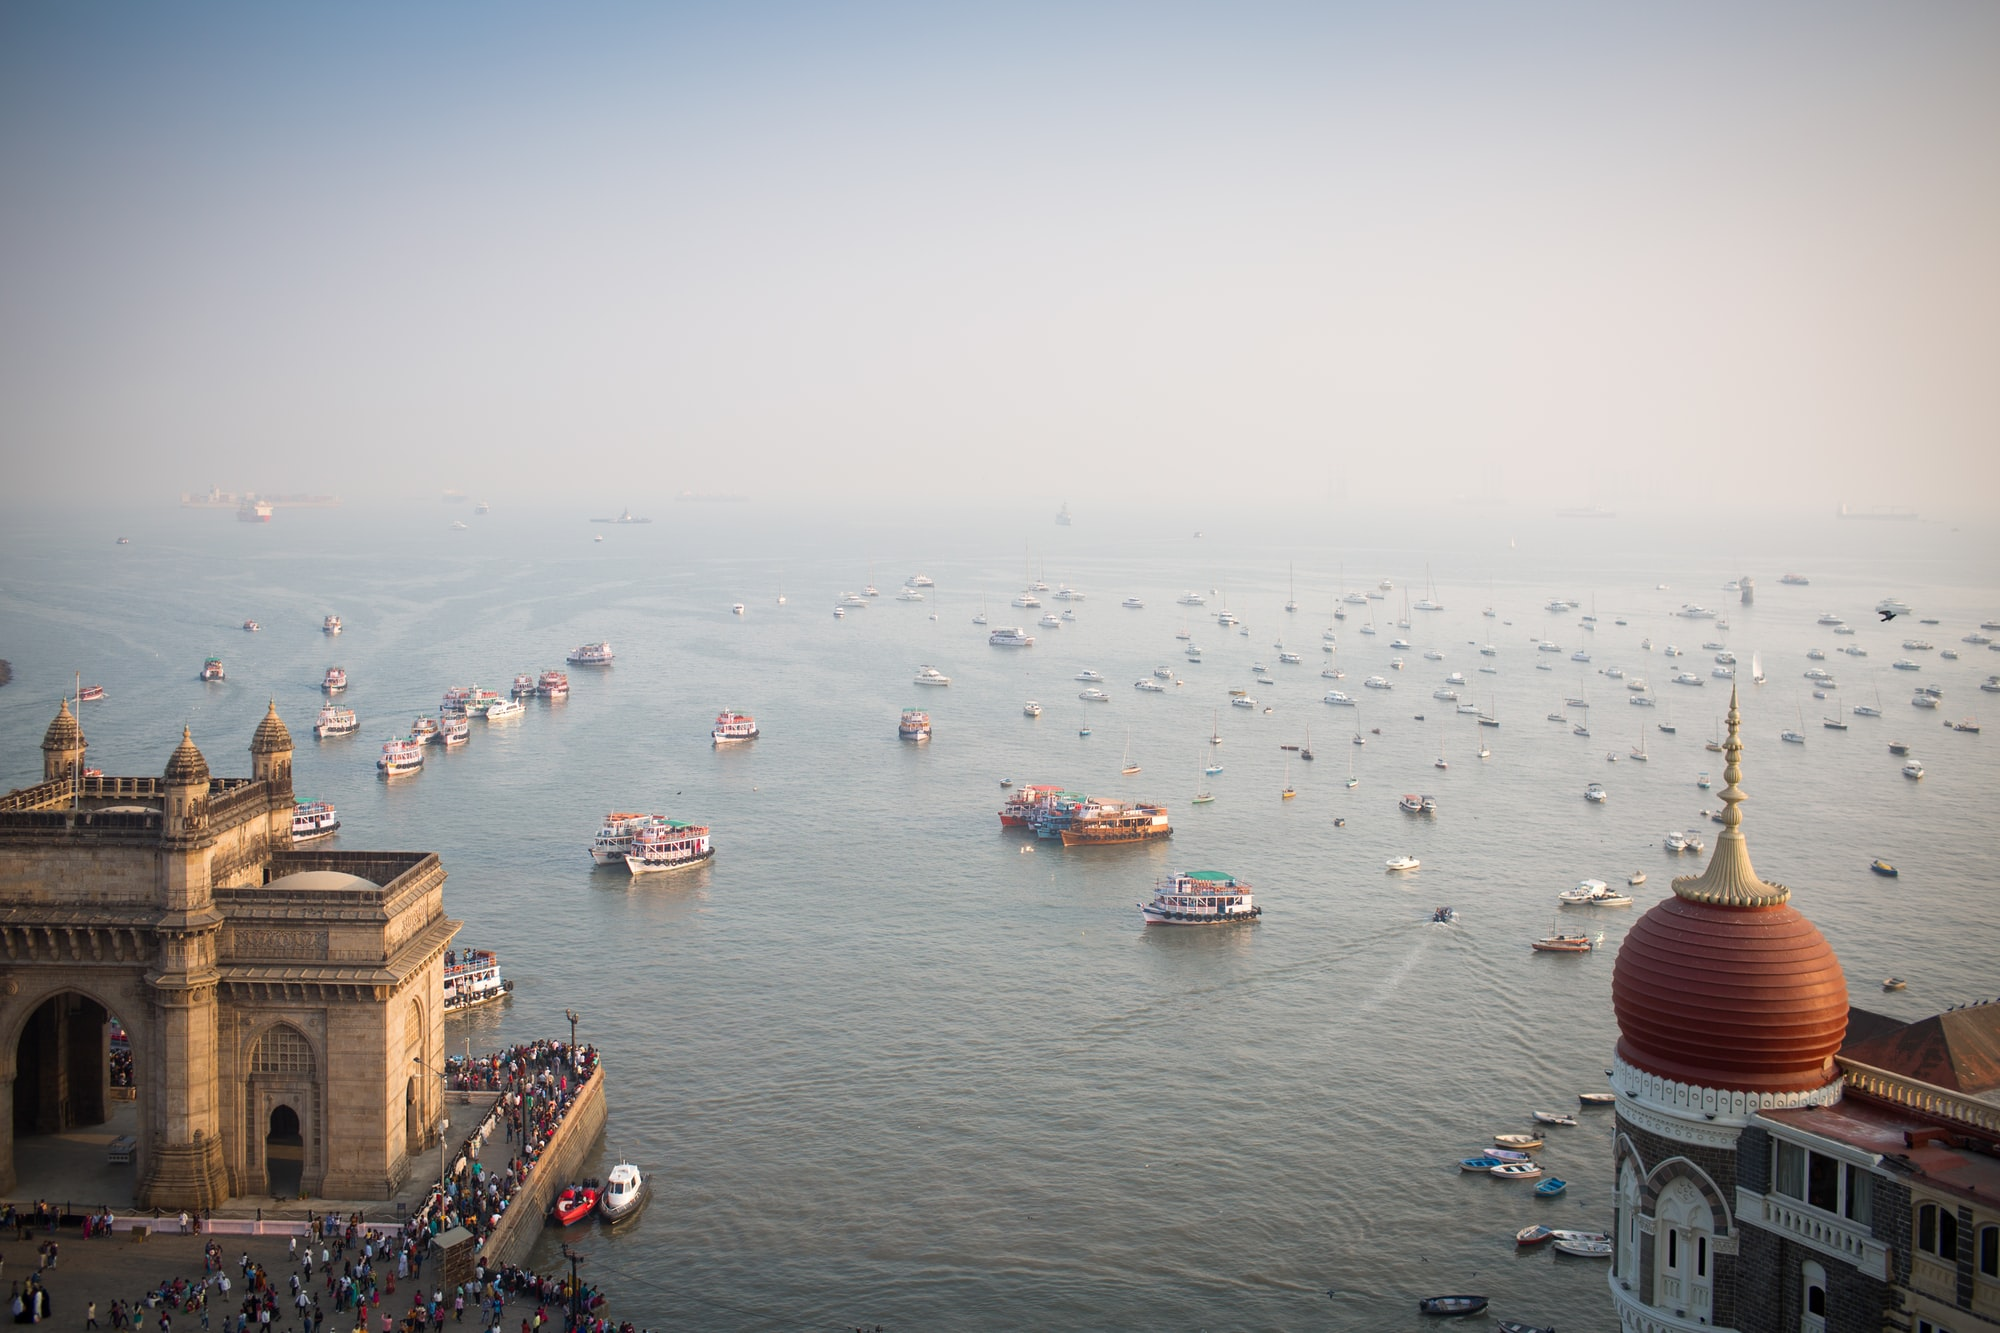 The view from a room at the Taj Mahal Towers hotel in Mumbai